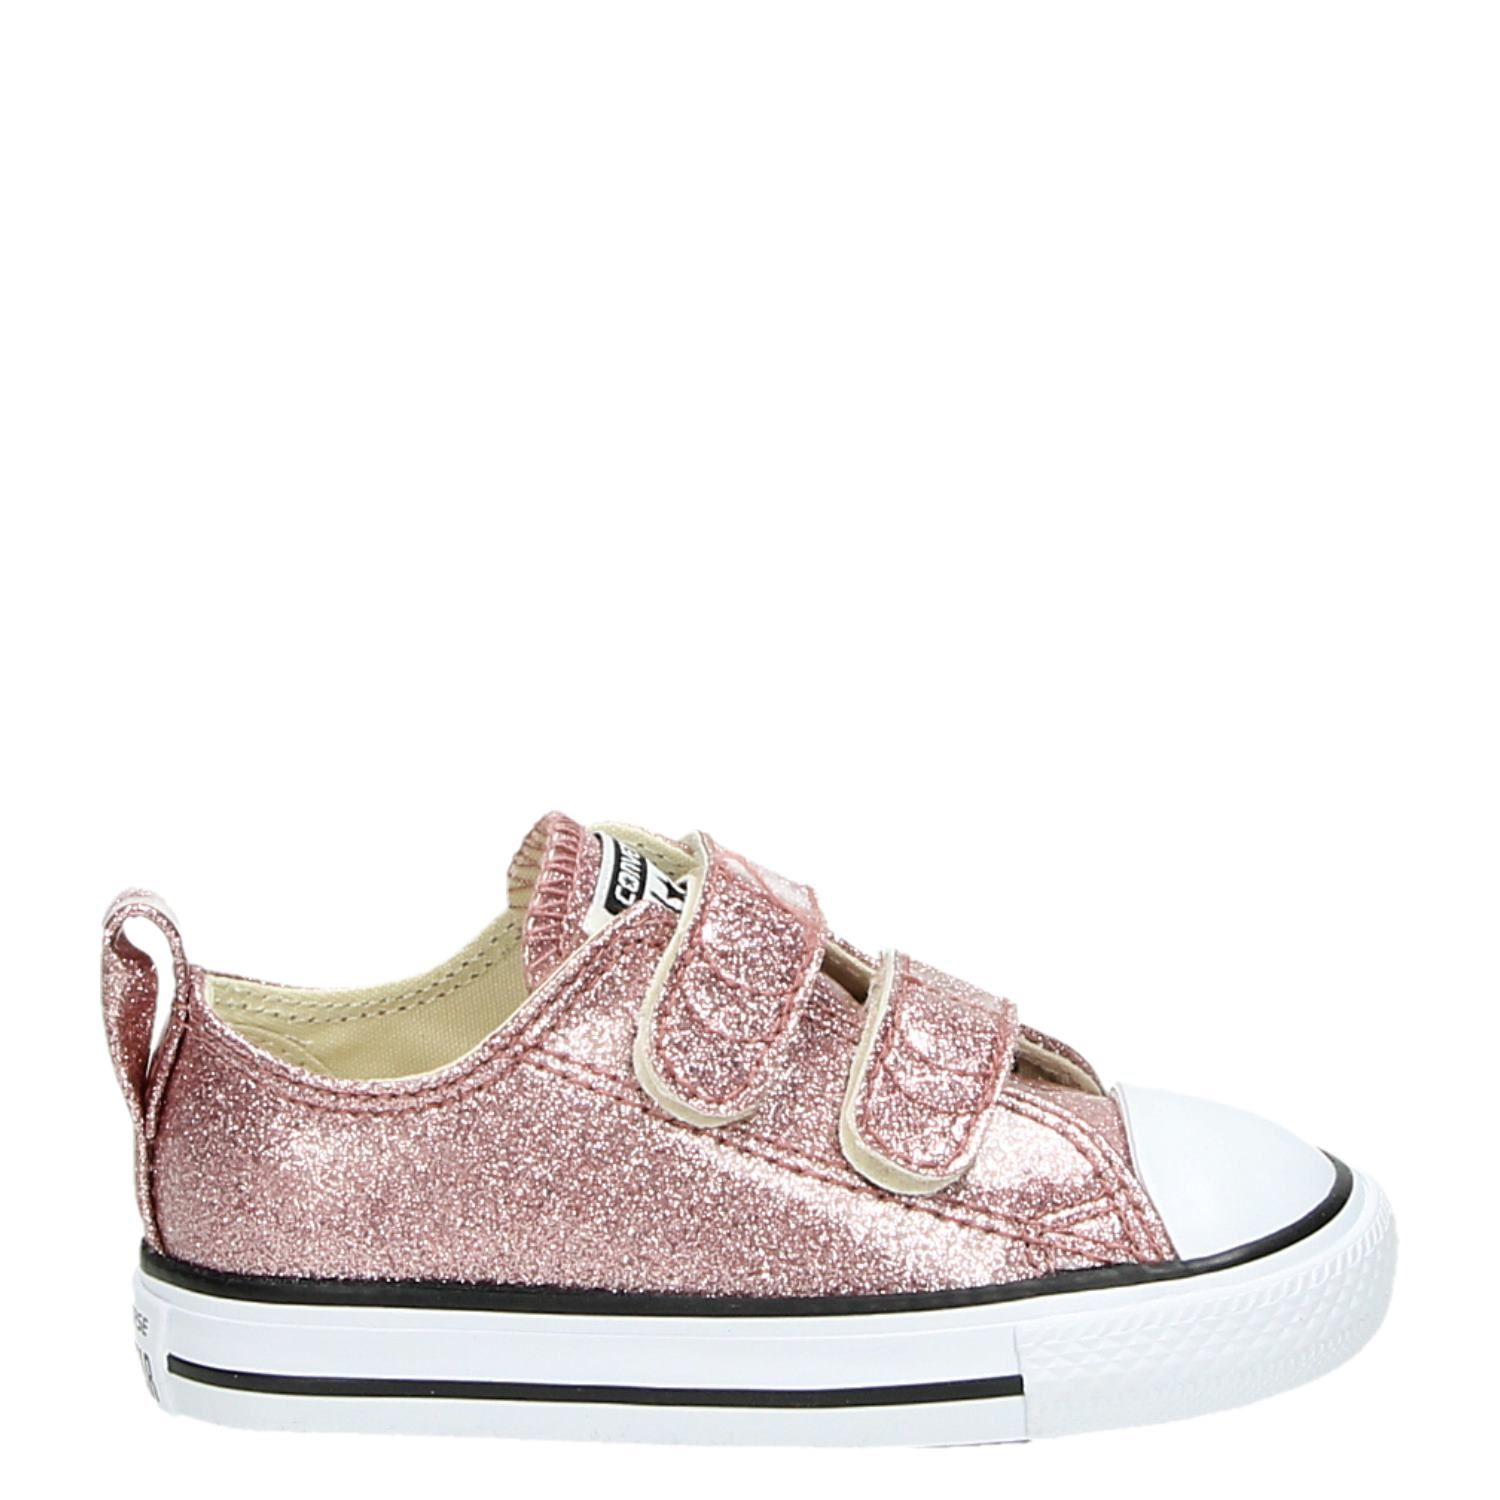 8ff80ad8ac0 Converse CT All Star 2V ox meisjes lage sneakers roze